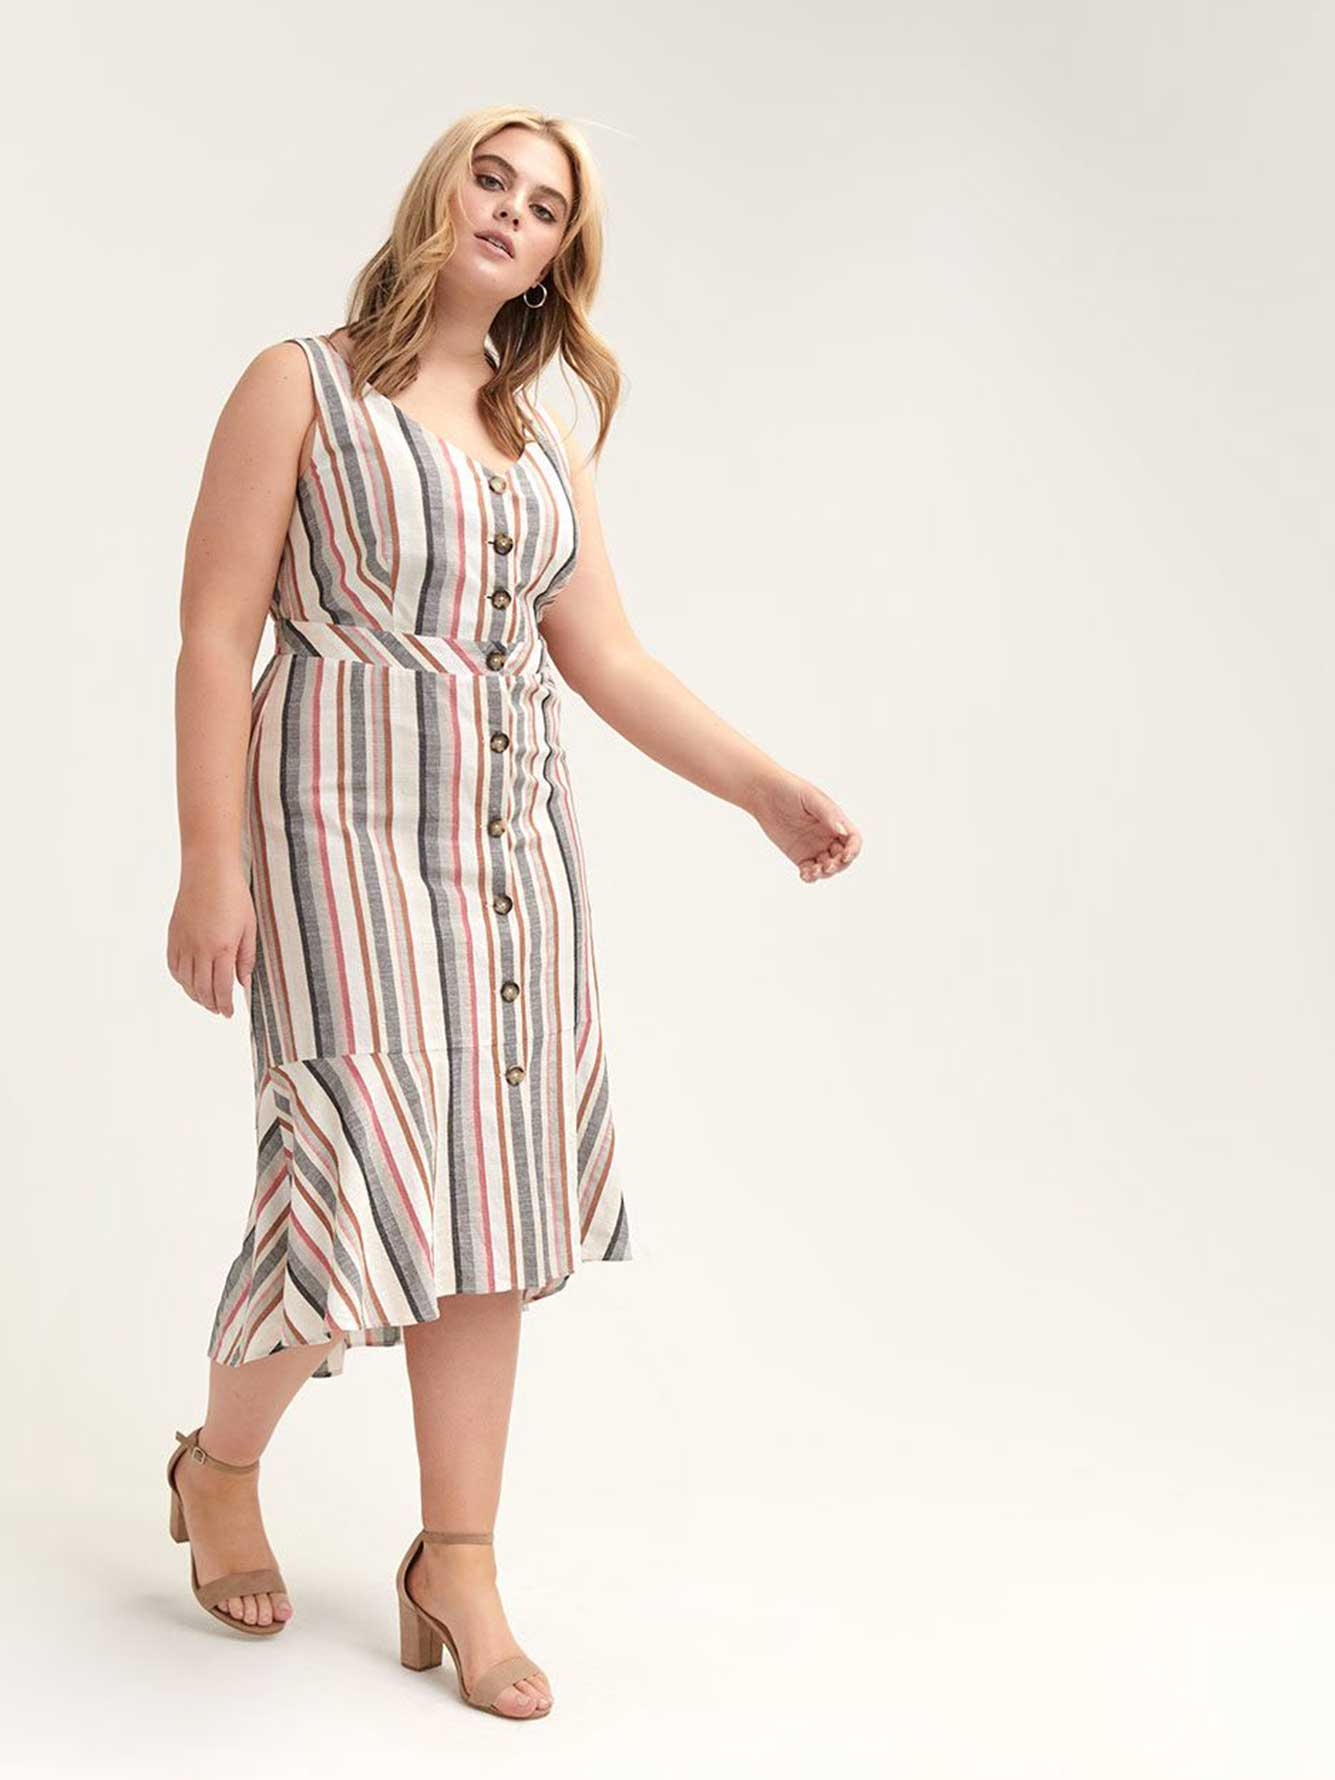 b05acf3bb Fit & Flared Striped Dress with Button Details - L&L | Penningtons